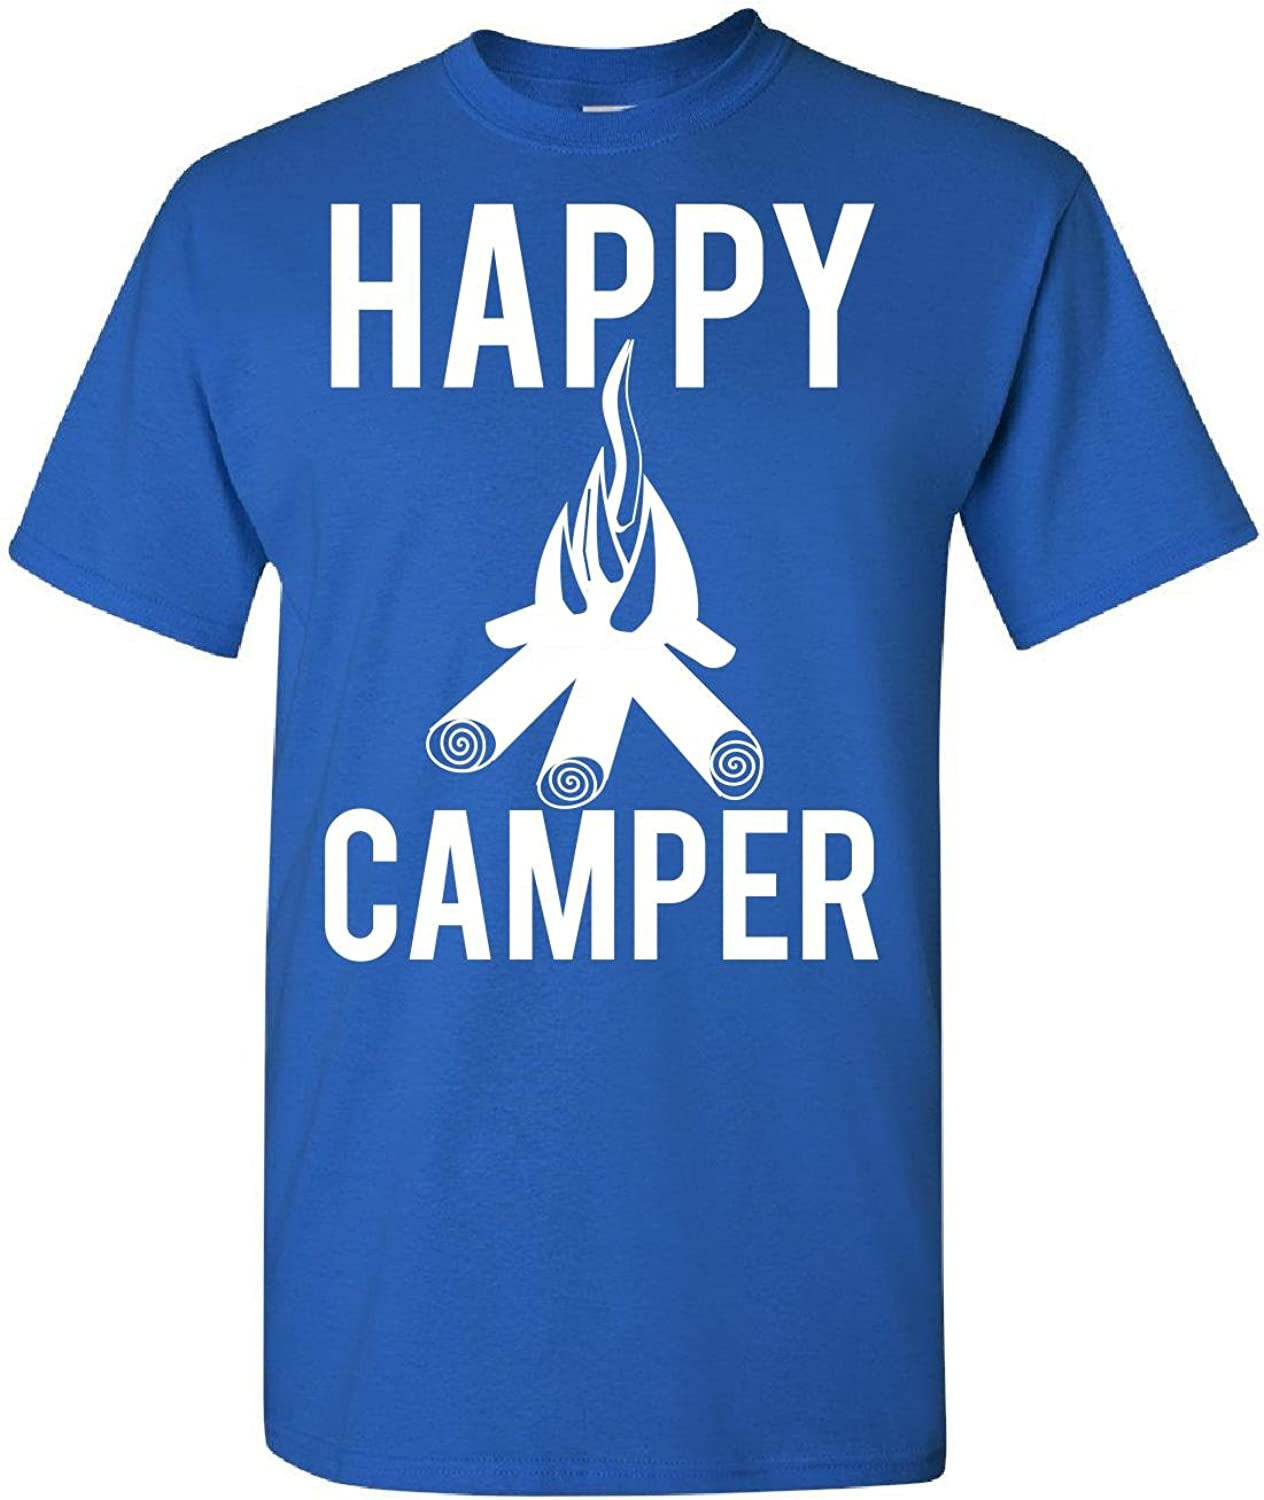 Kids T Shirt L Royal Happy Camper Campfire Outdoor Campground Hiking and Fun